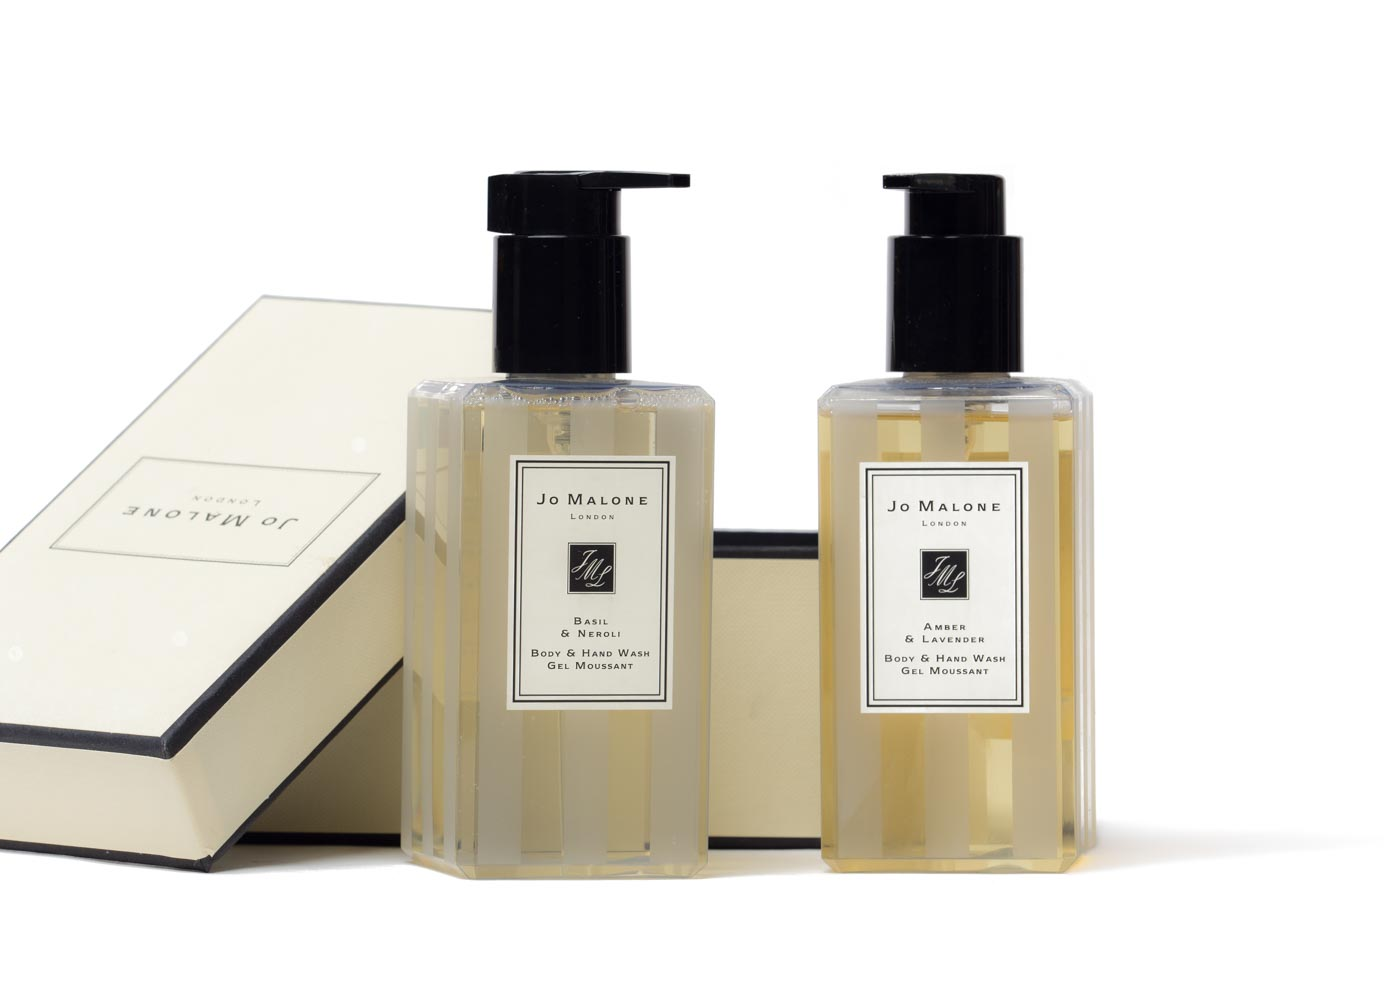 Make a shower kit and tuck in some special bath products, like a Jo Malone body wash.